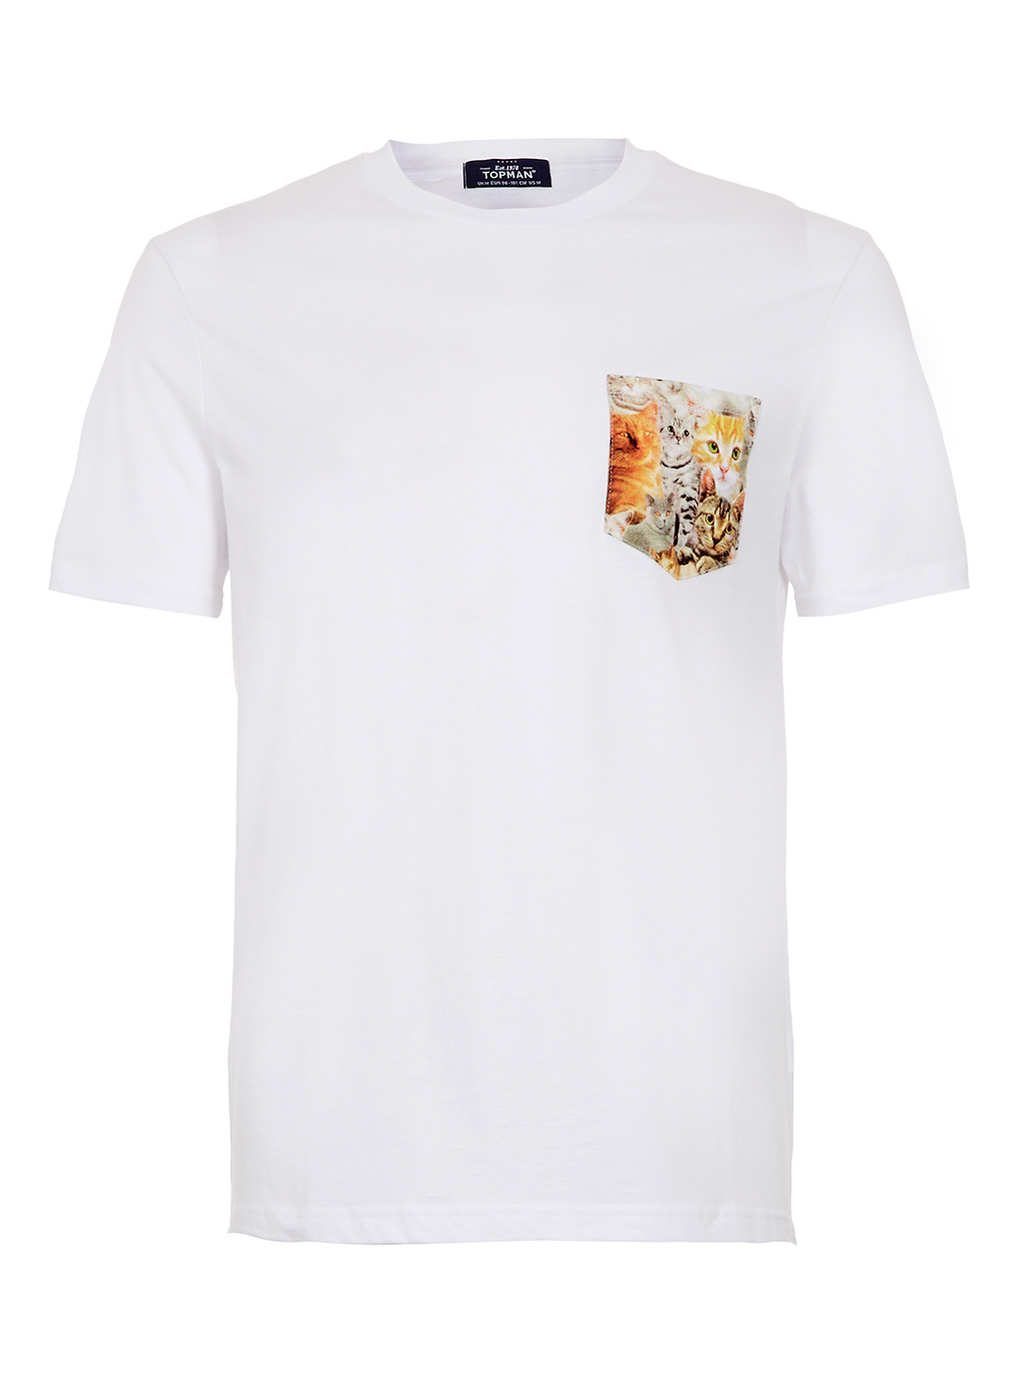 T shirt with pocket template kamos t shirt men s v neck source a patch pocket for your nico free template collection of shirt pronofoot35fo Gallery